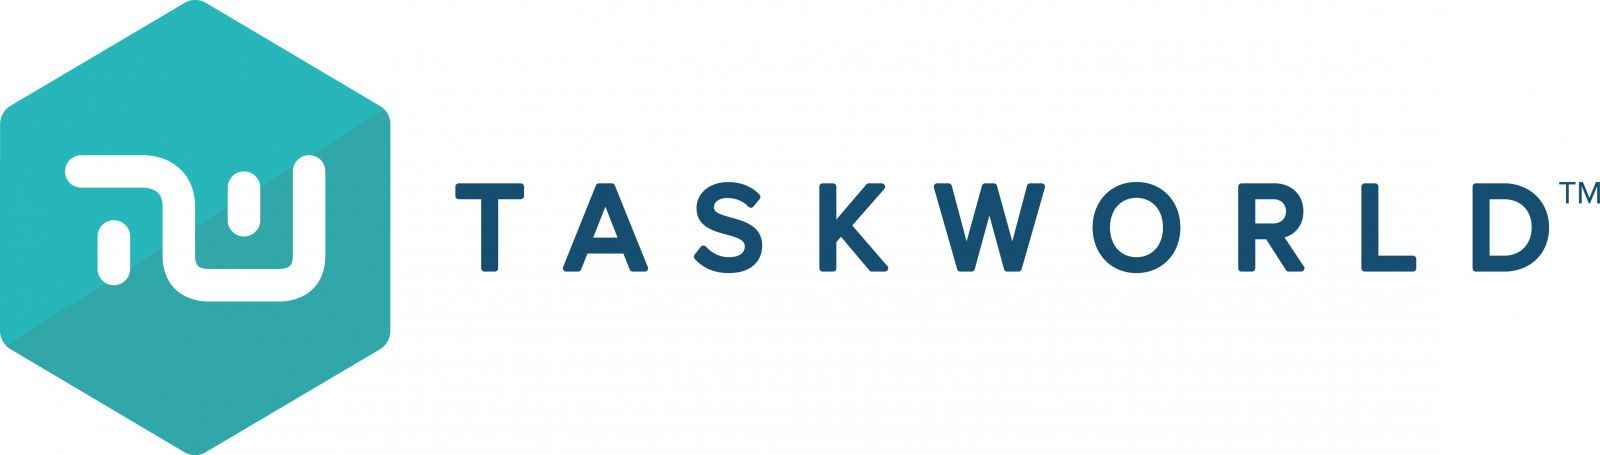 logo taskworld